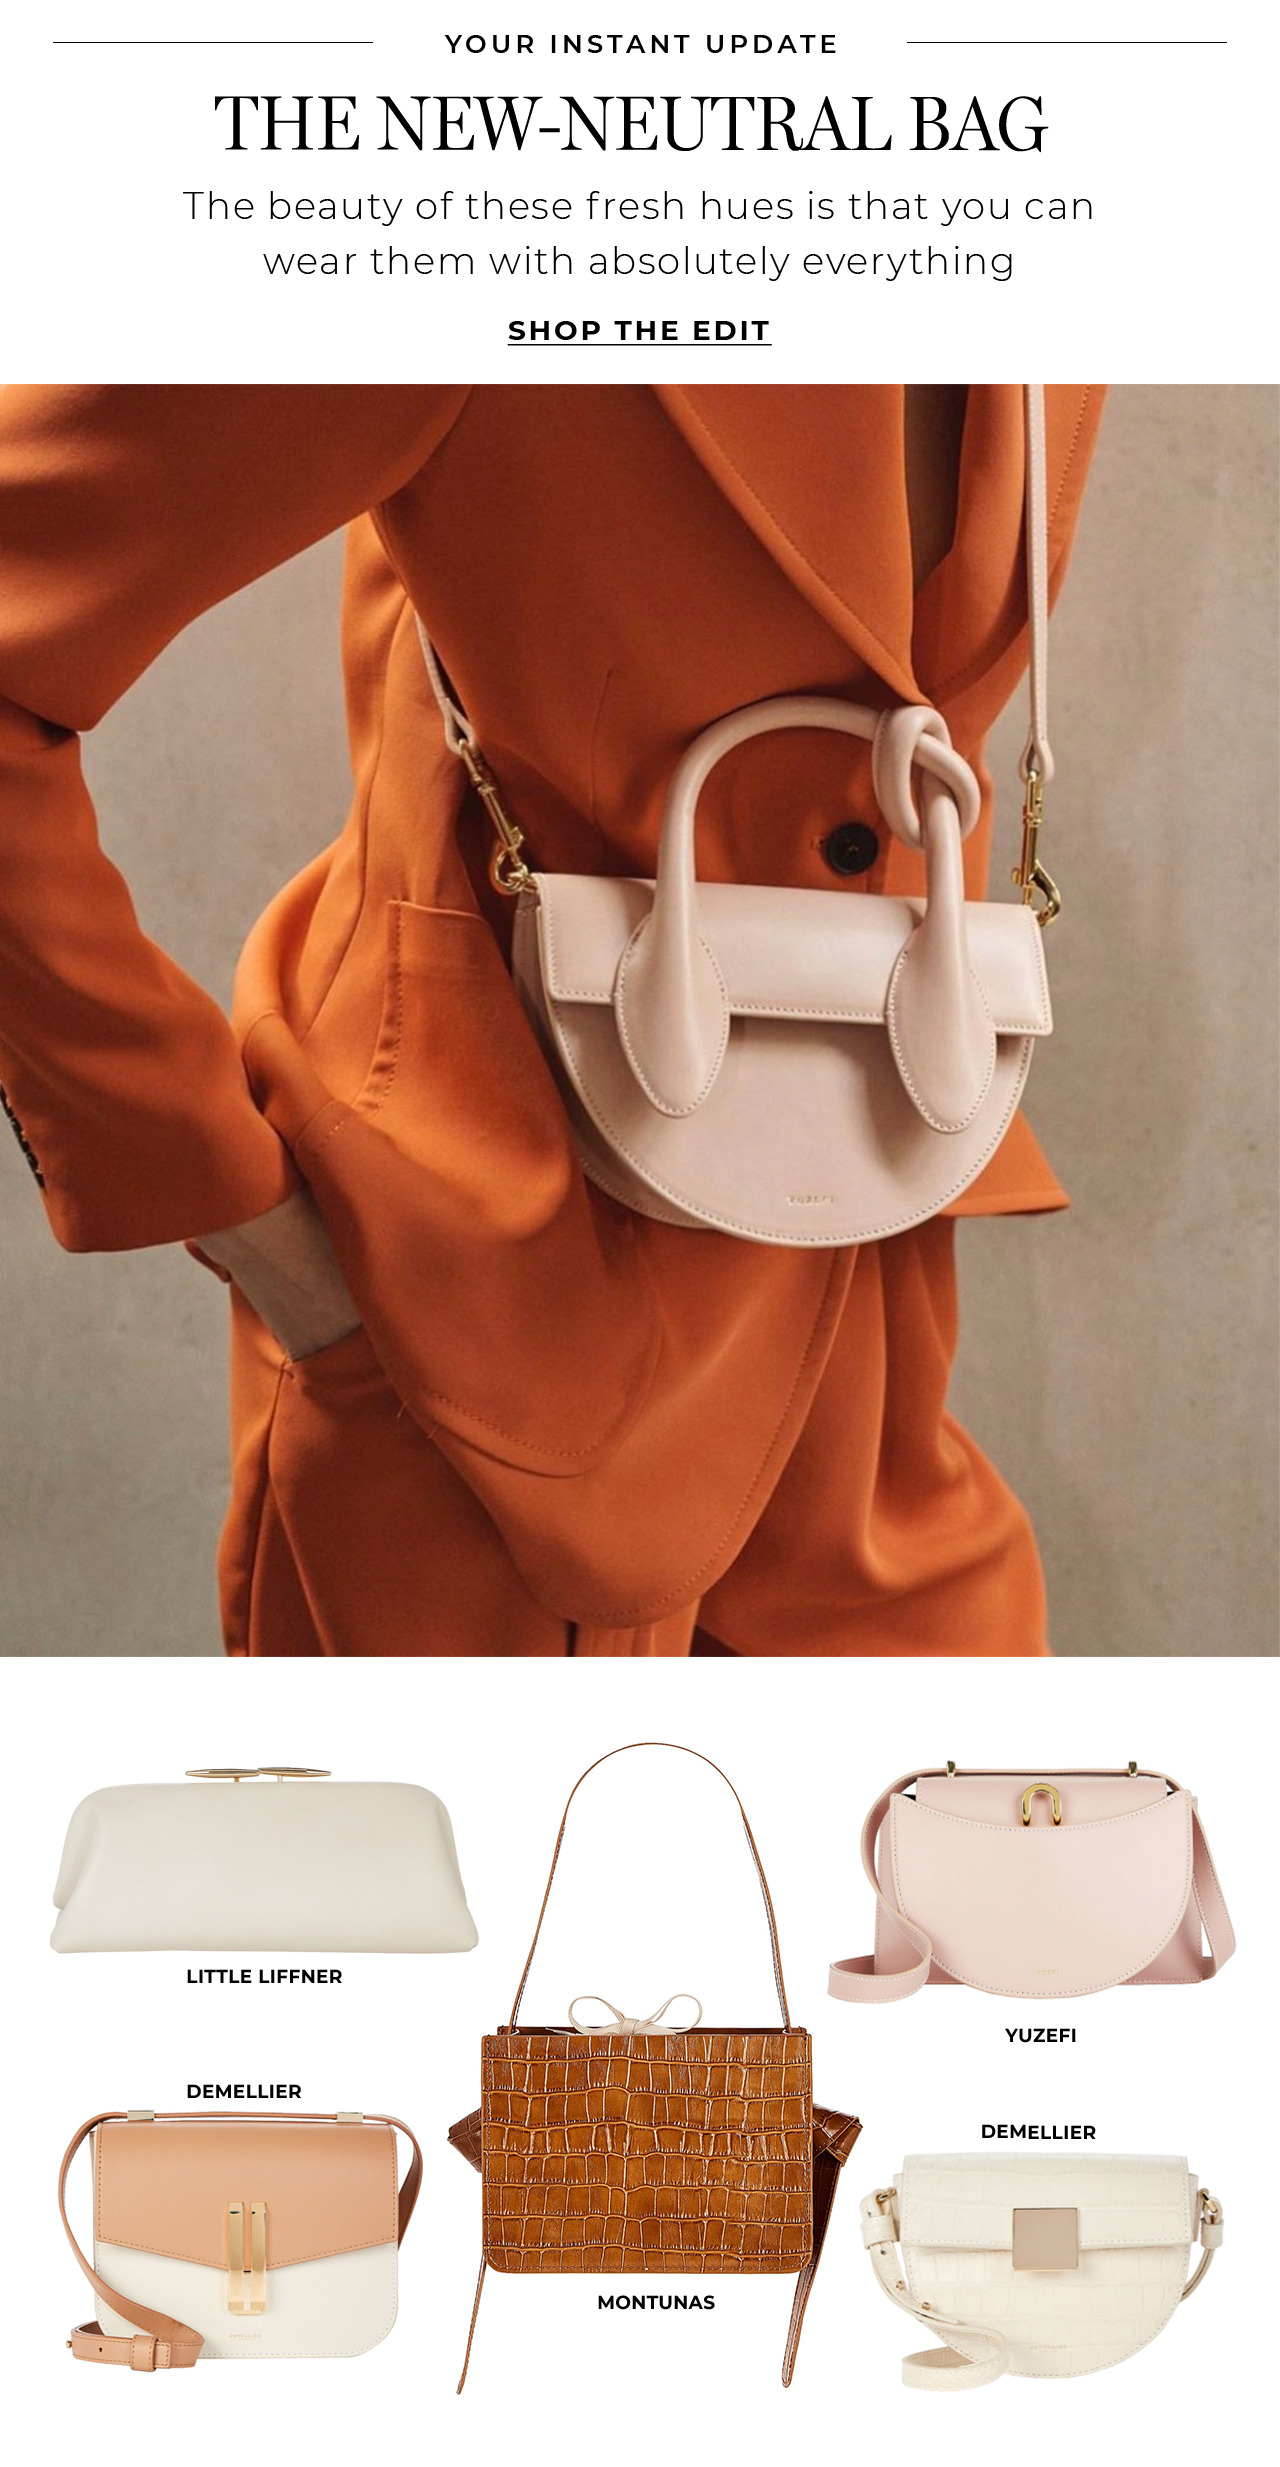 Wear the new neutral bag with absolutely everything